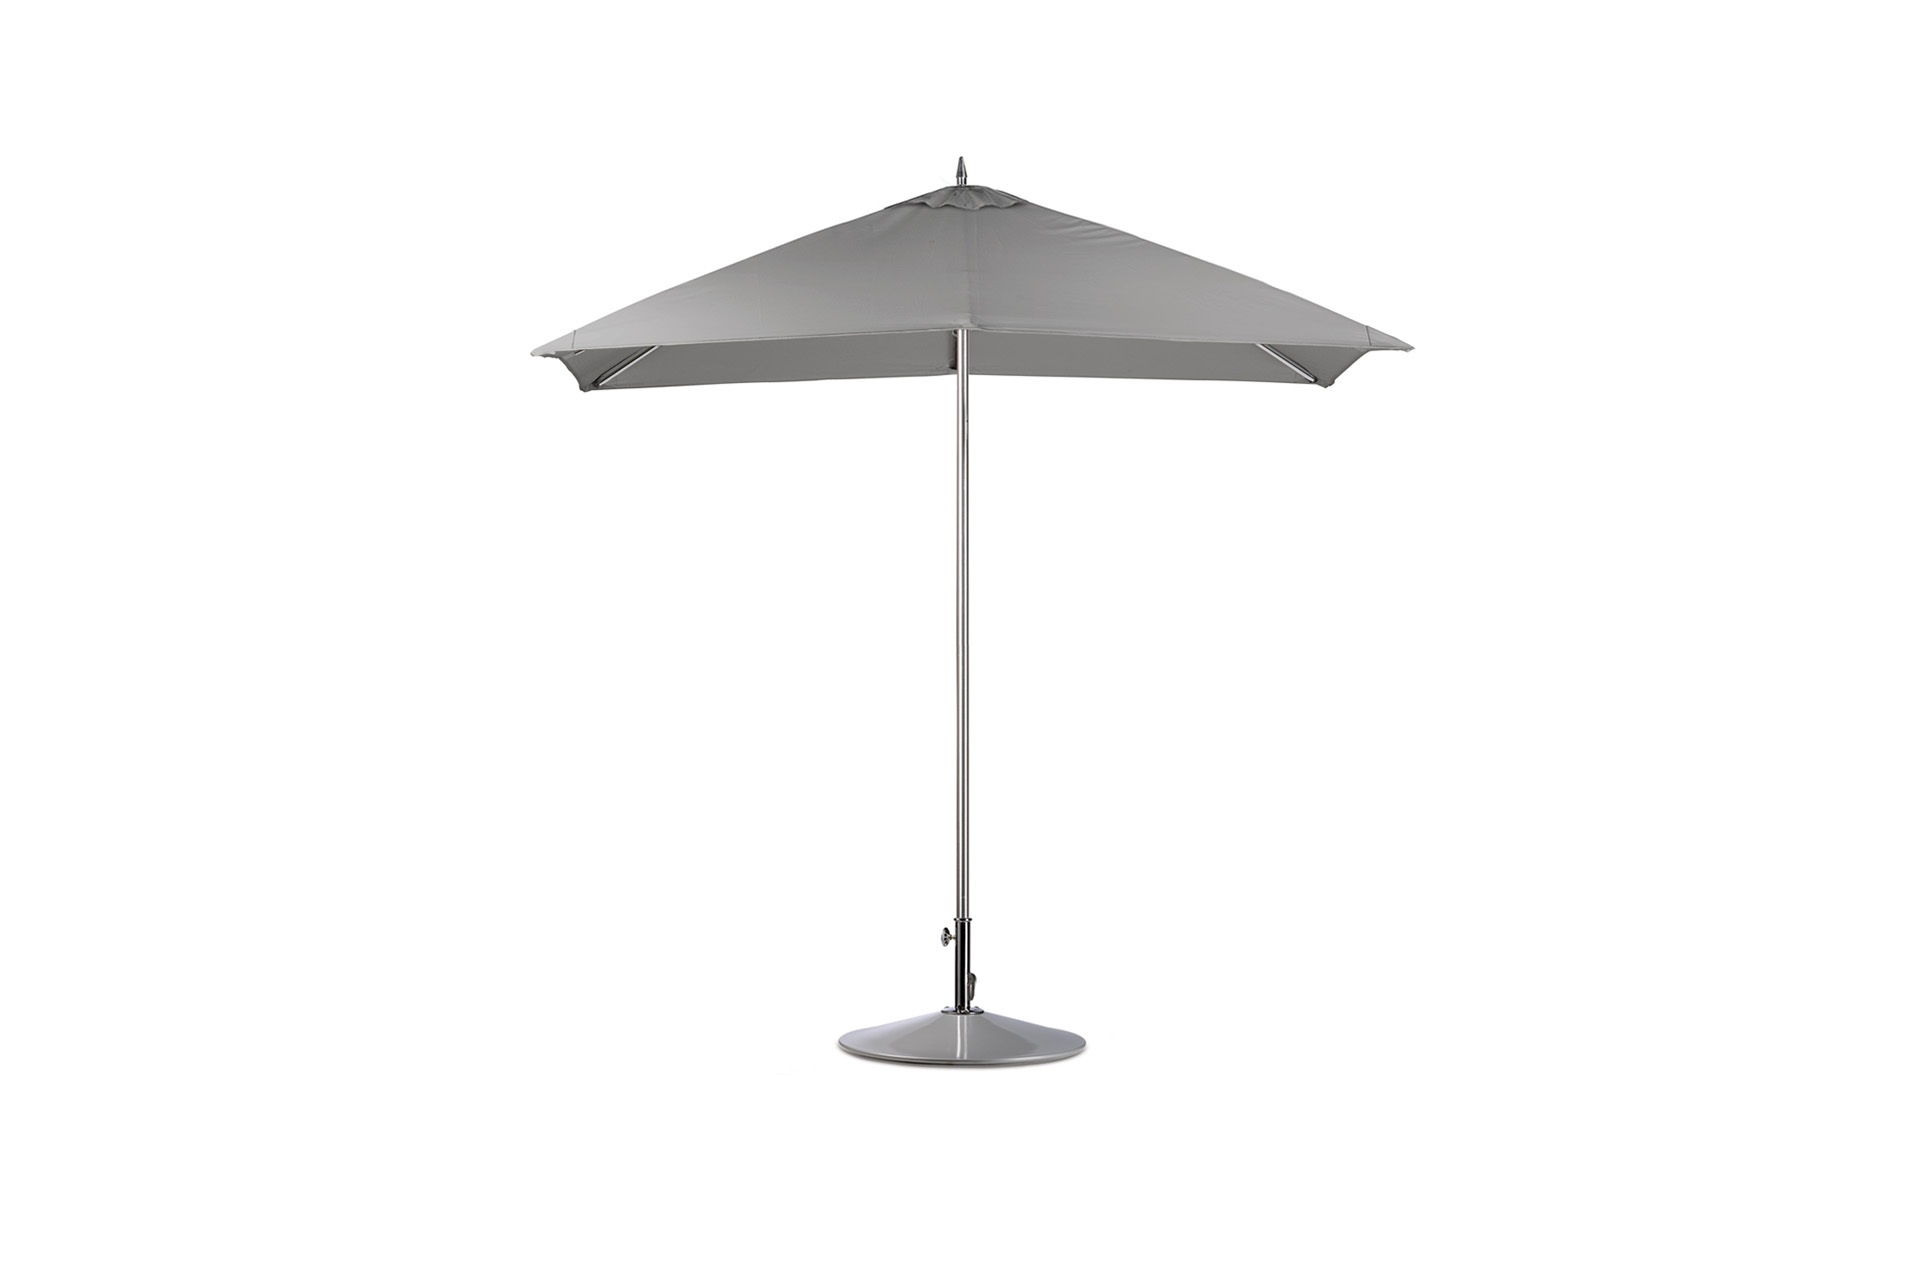 tuinparasol ikea ikea karlso parasol with tuinparasol ikea garden with tuinparasol ikea brico. Black Bedroom Furniture Sets. Home Design Ideas